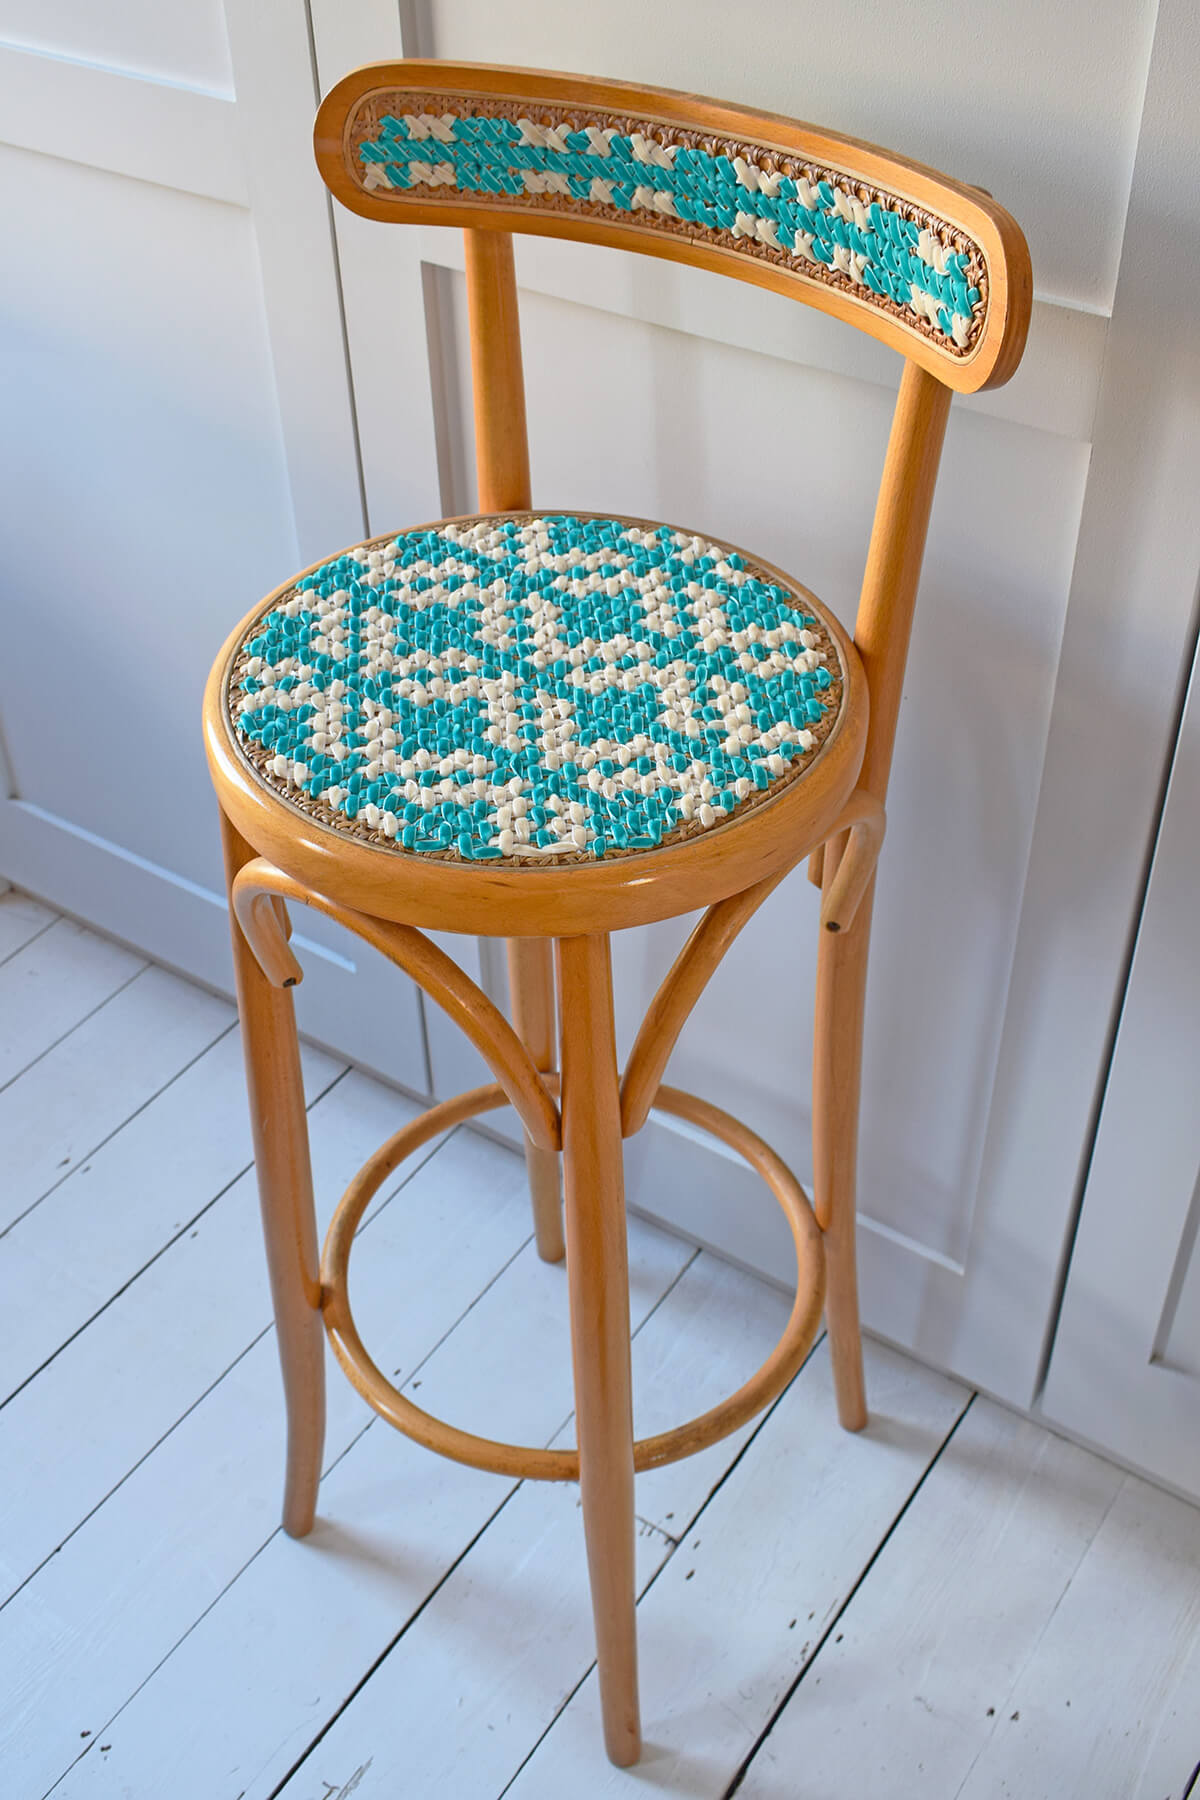 Finished stitched chair